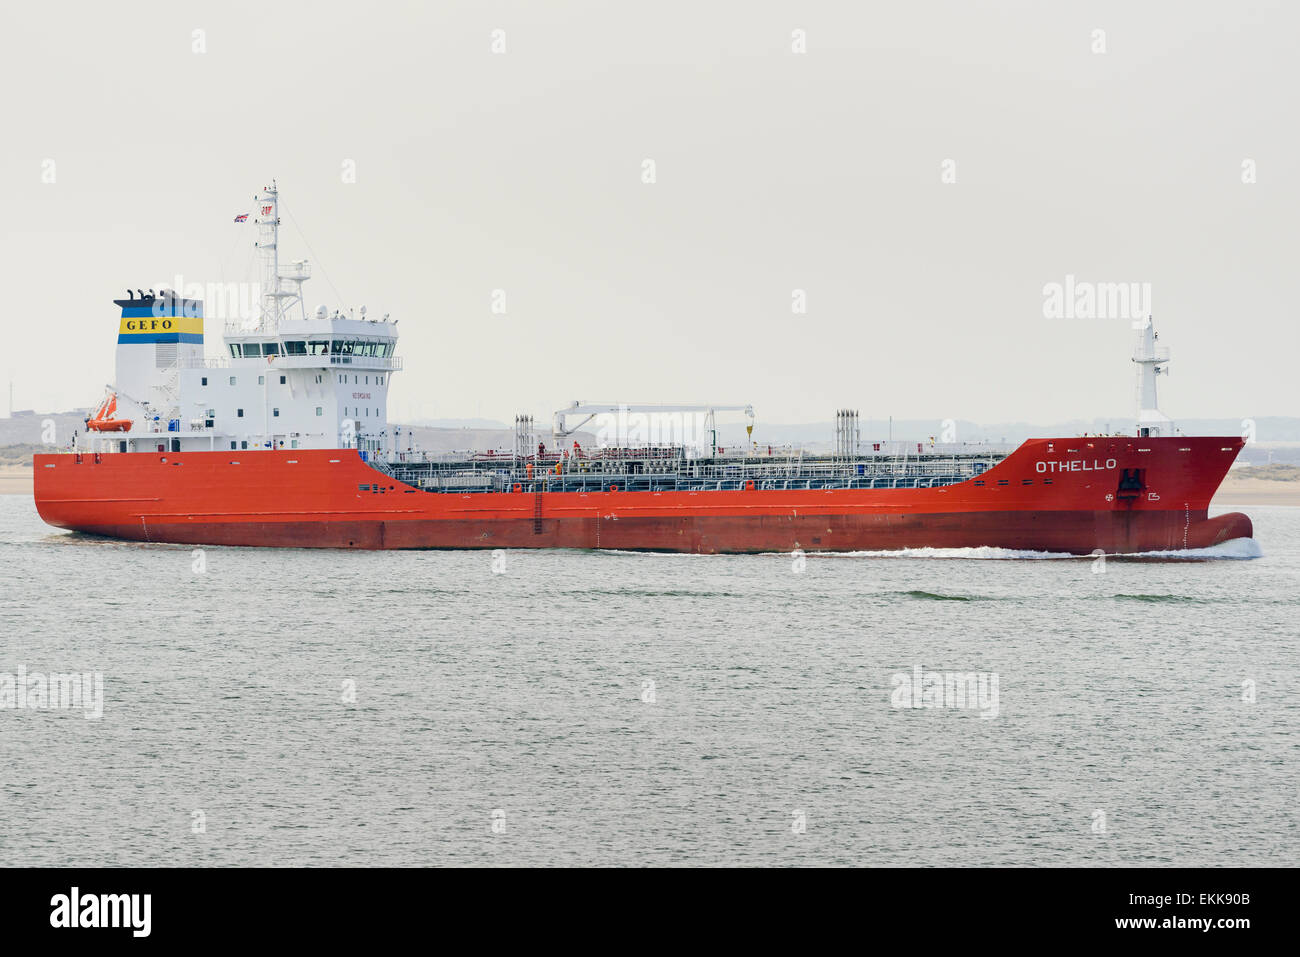 M/T Othello, a dublex stainless steel chemical / oil tanker built in Tersan Shipyard Turkey. Owners Gefo Gesellschaft - Stock Image